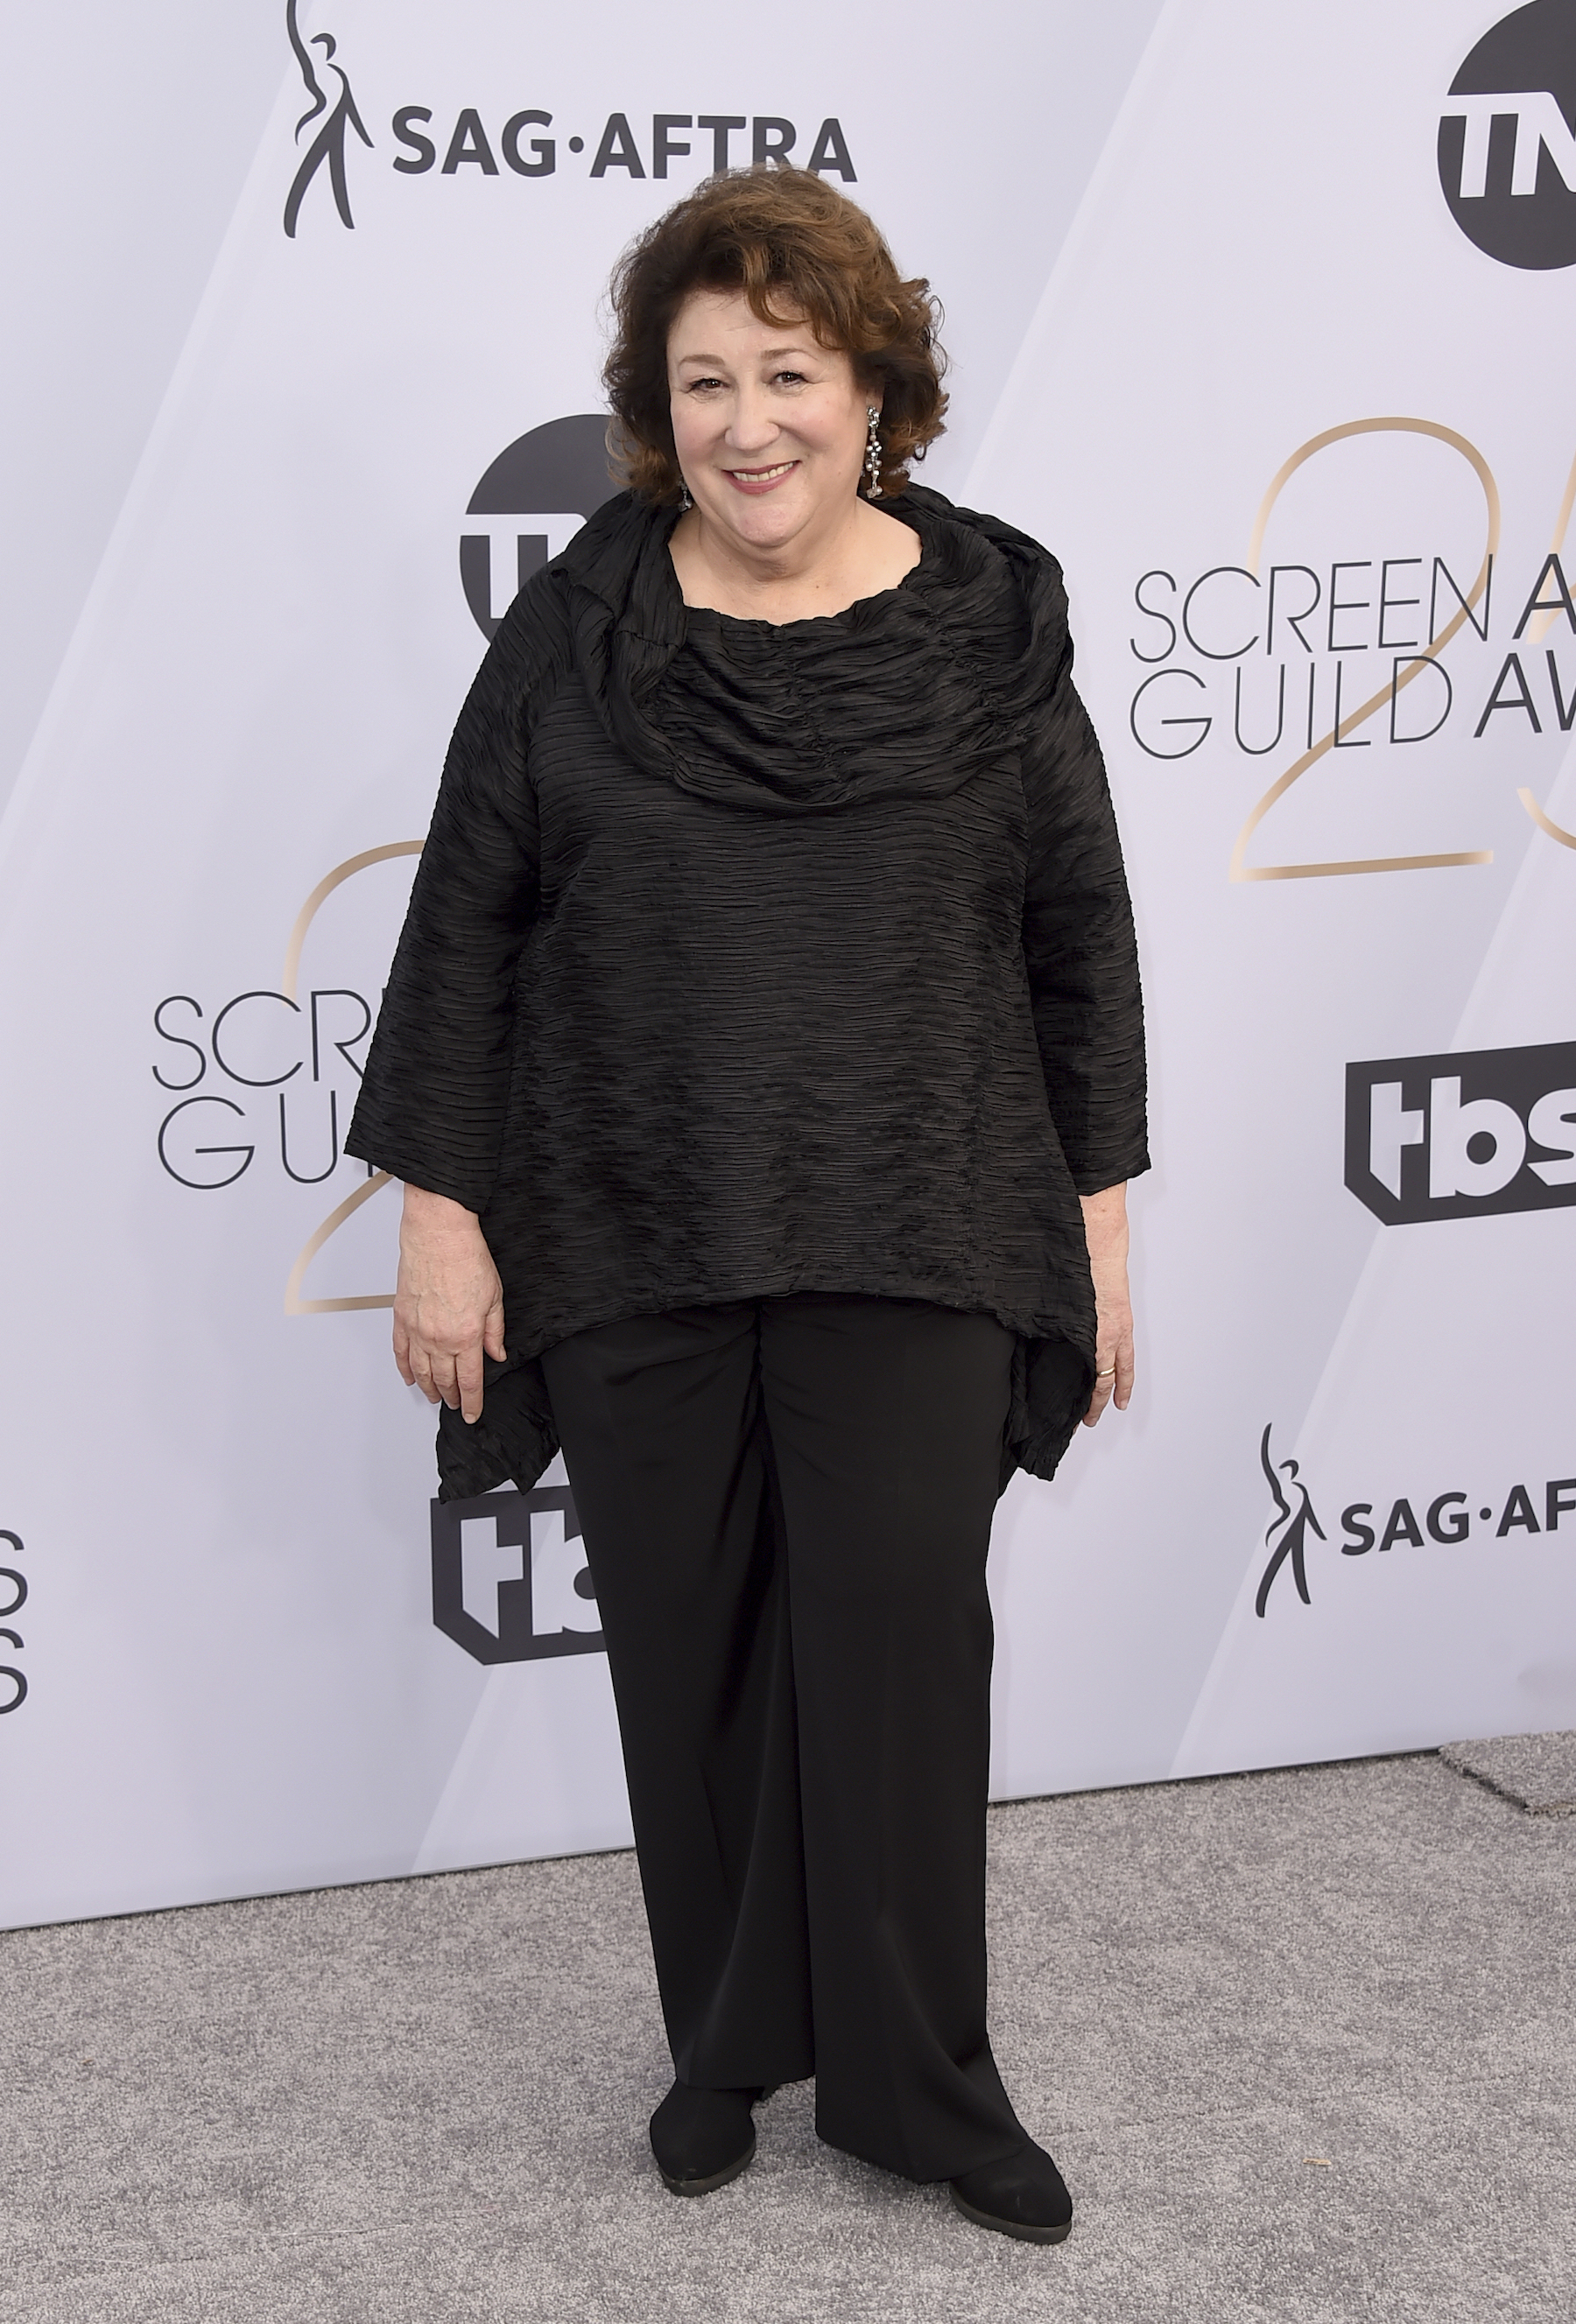 "<div class=""meta image-caption""><div class=""origin-logo origin-image ap""><span>AP</span></div><span class=""caption-text"">Margo Martindale arrives at the 25th annual Screen Actors Guild Awards at the Shrine Auditorium & Expo Hall on Sunday, Jan. 27, 2019, in Los Angeles. (Jordan Strauss/Invision/AP)</span></div>"